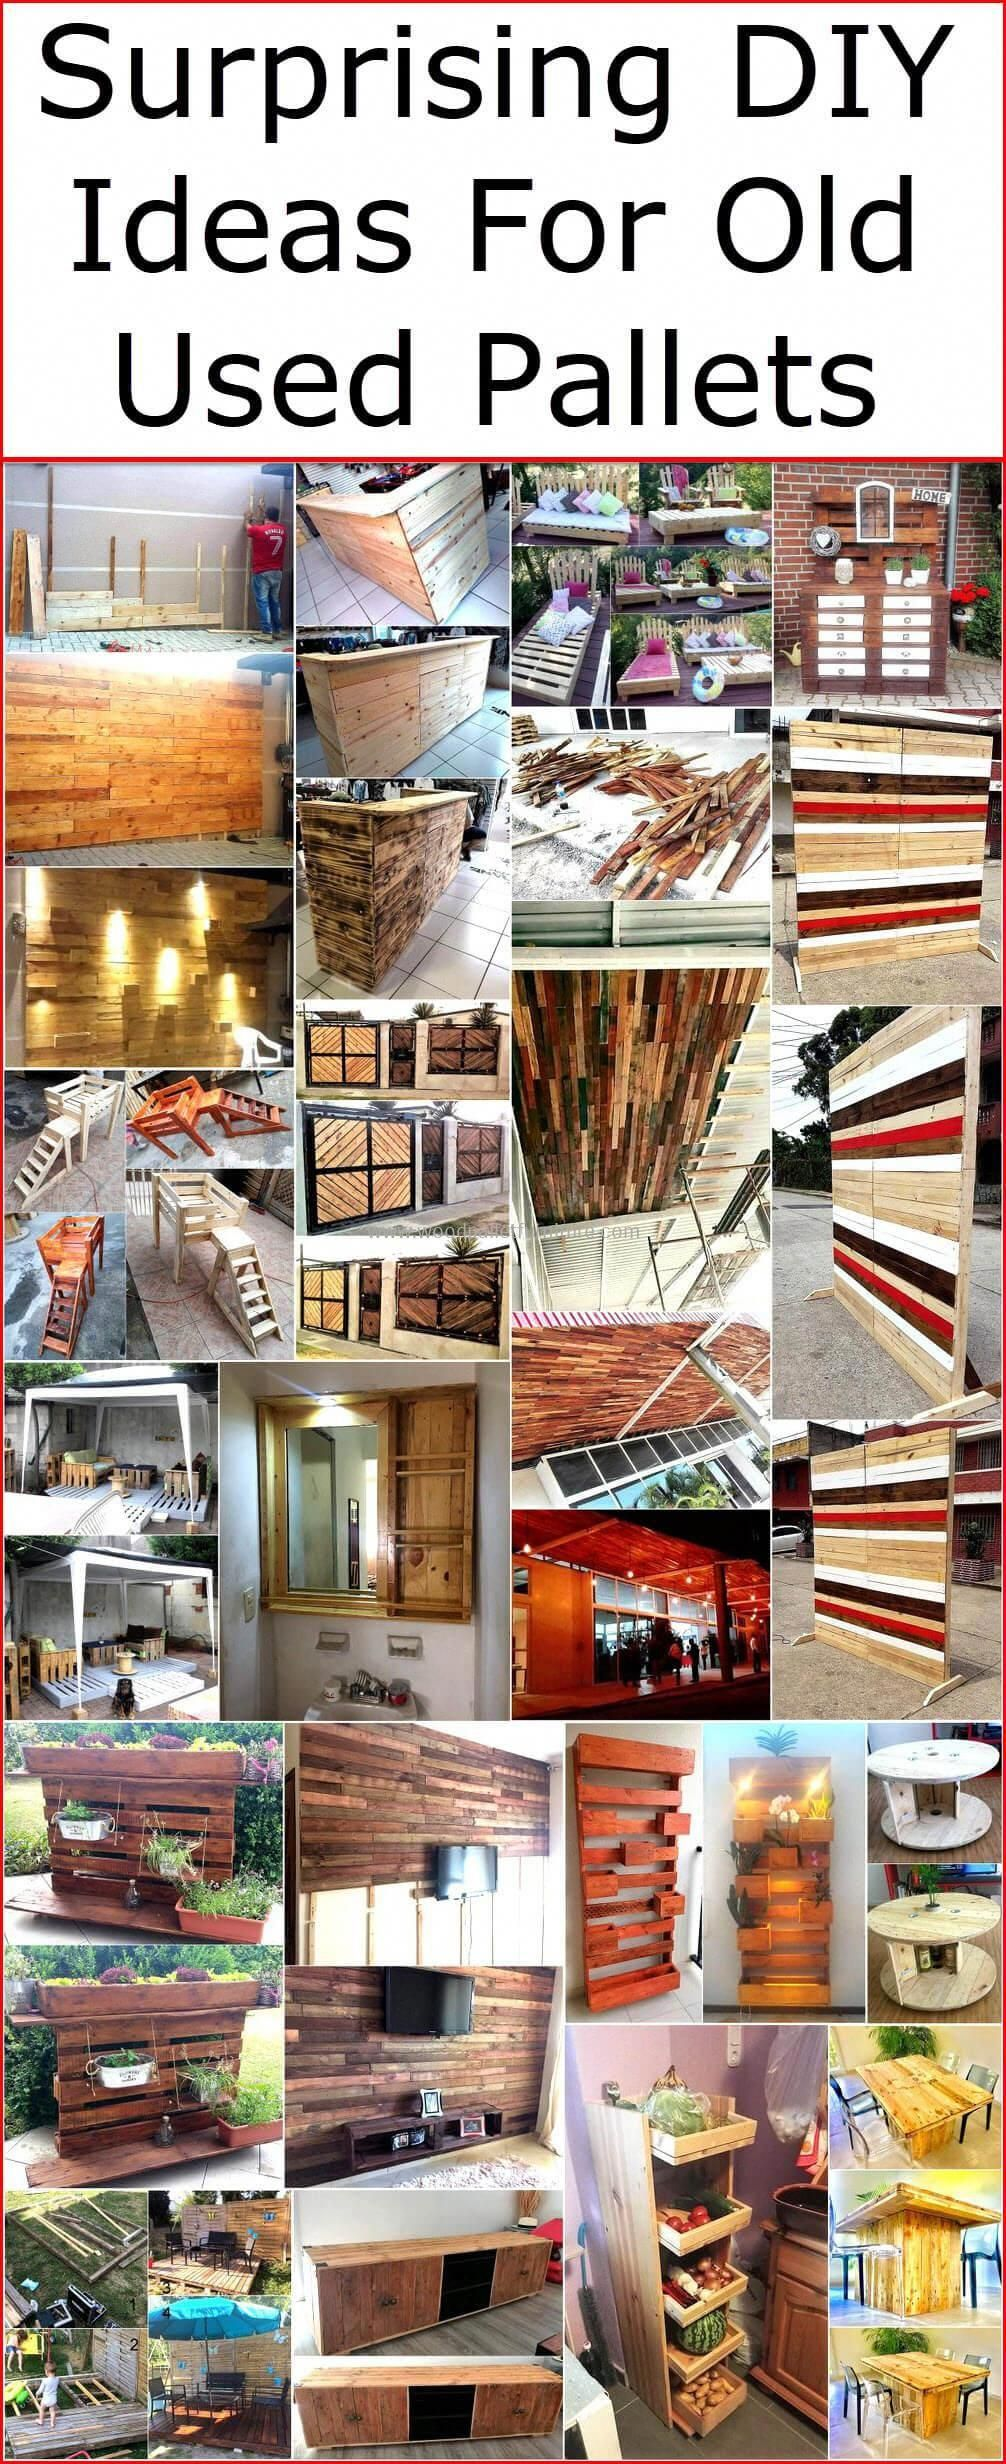 surprising diy ideas for old used pallets in 2020 pallet on extraordinary ideas for old used dumped pallets wood id=13892